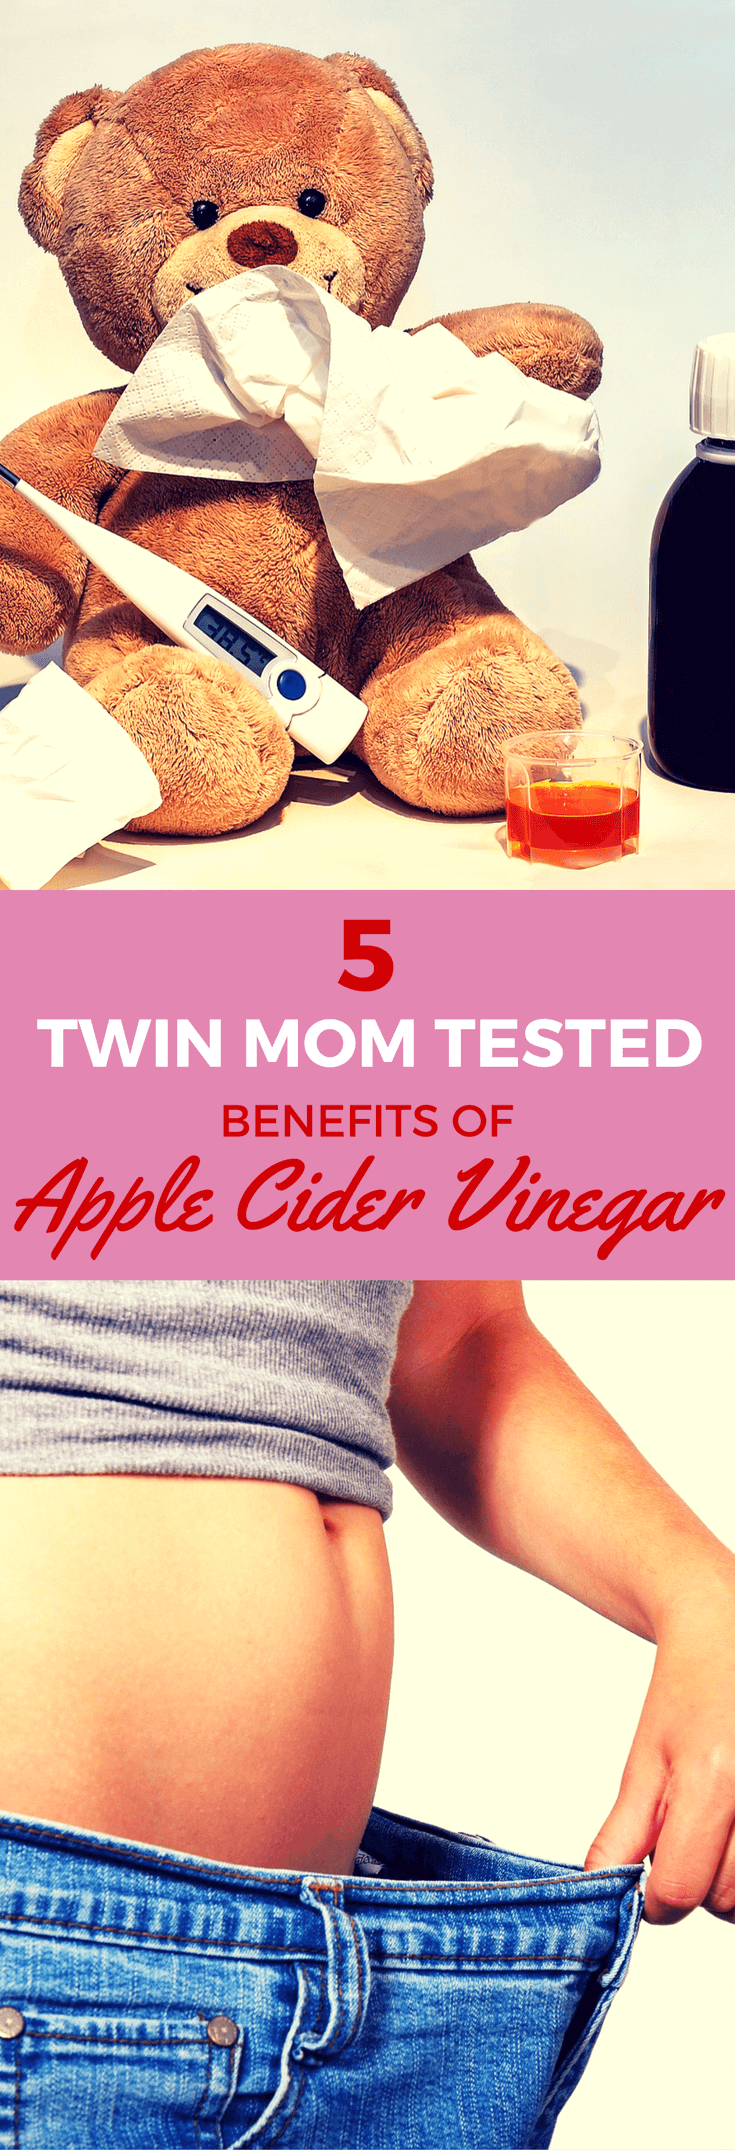 5 uses and benefits of apple cider vinegar including for weight loss, colds plus recipe for how to make apple cider vinegar drink.